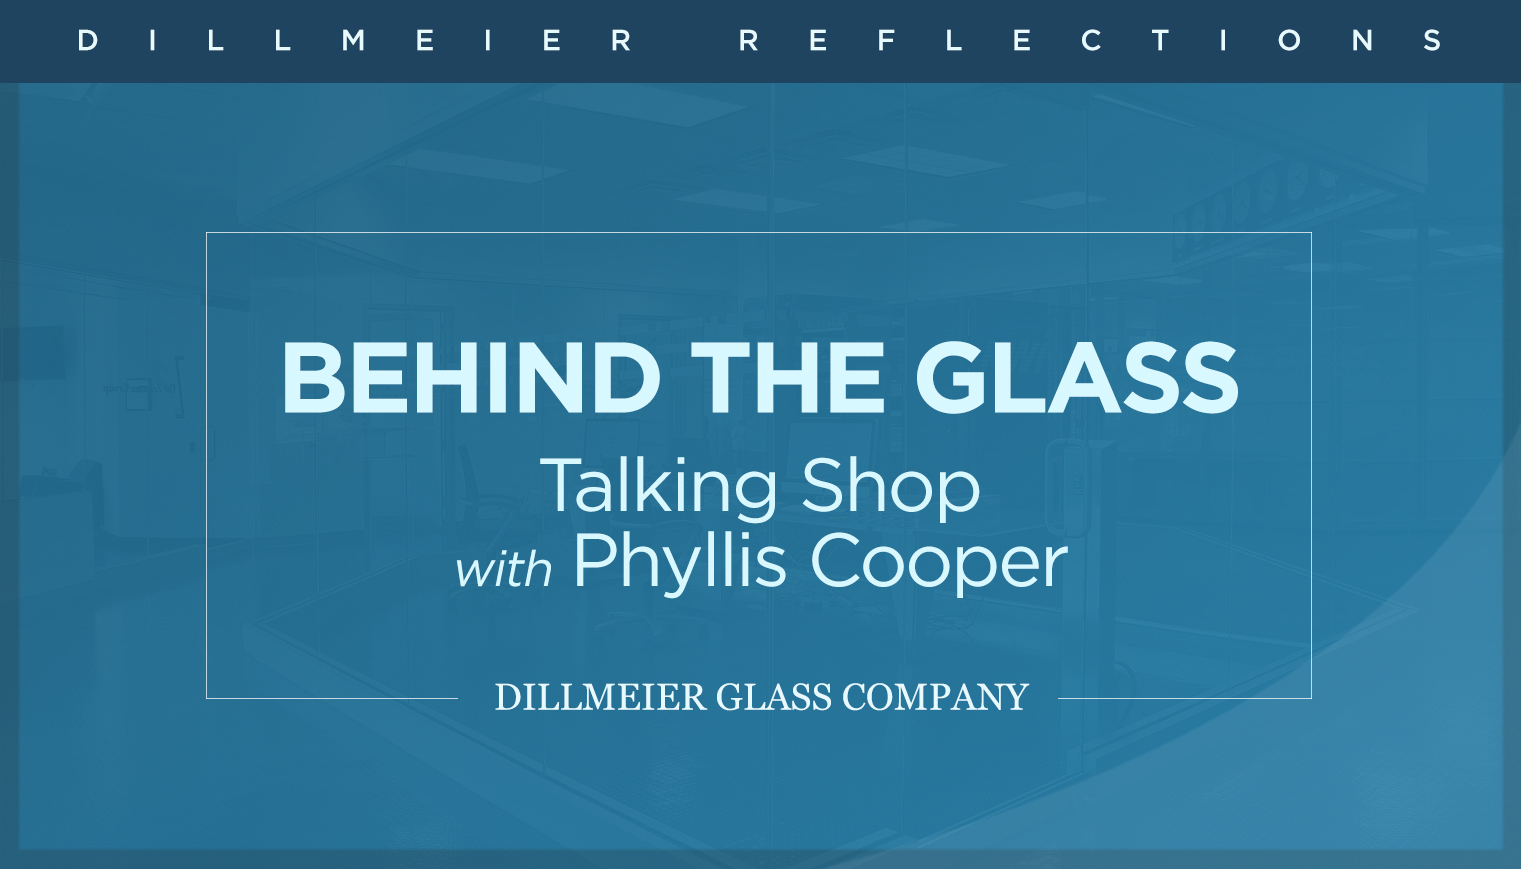 Behind the Glass: Talking Shop with Phyllis Cooper